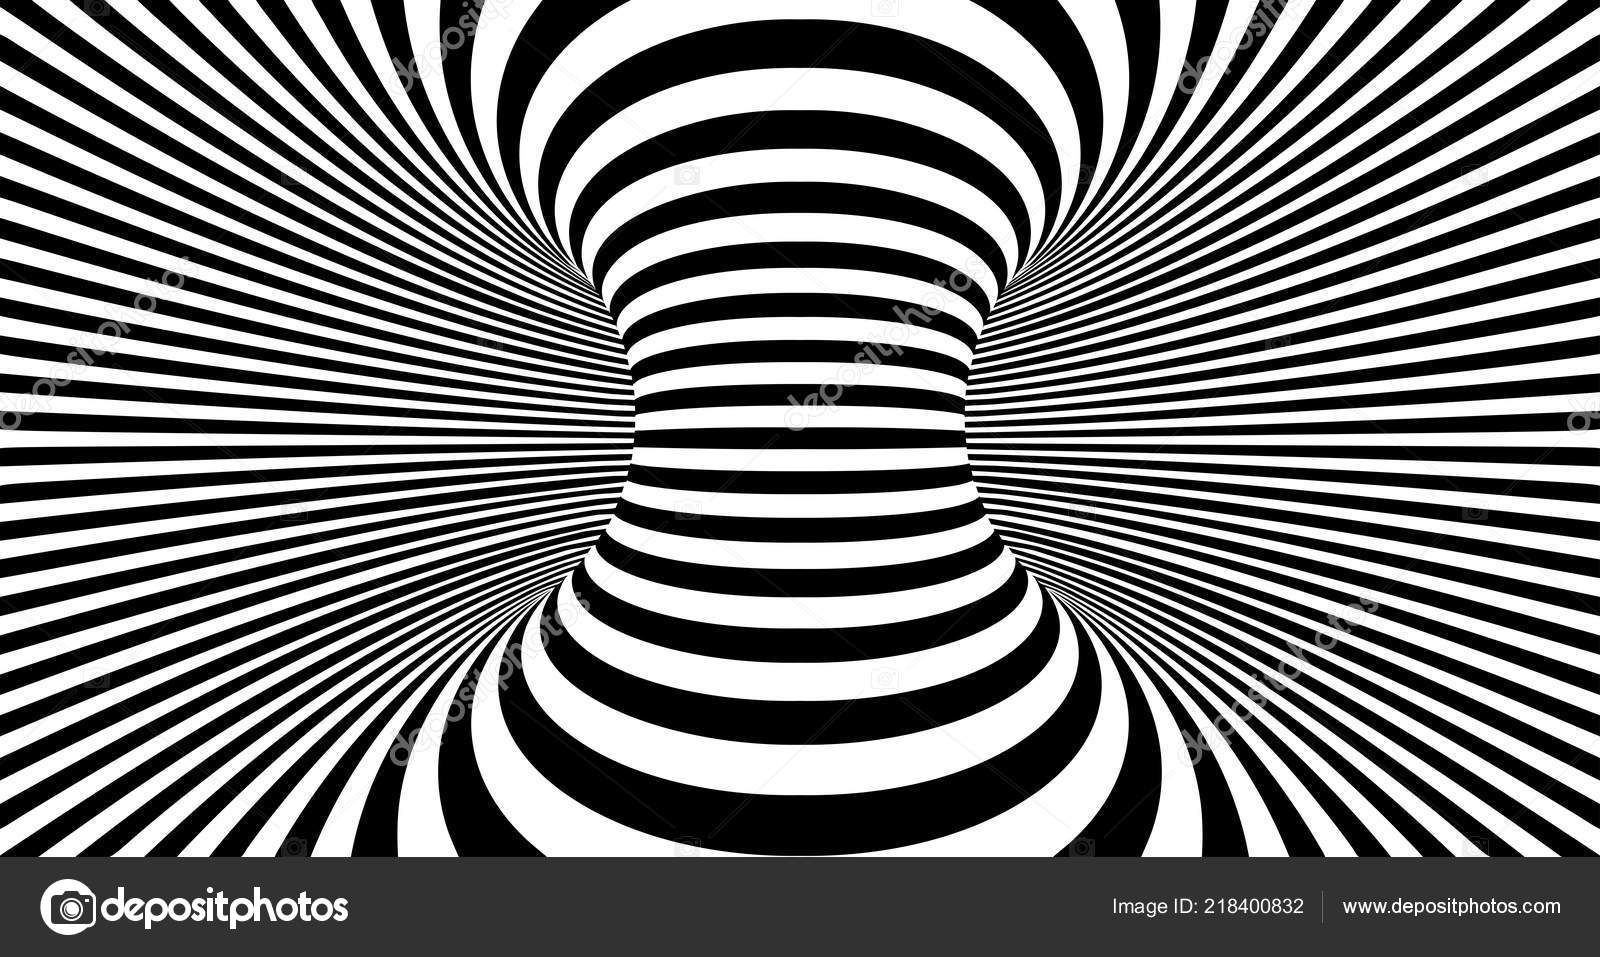 Optical illusion lines background abstract 3d black and white illusions conceptual design of optical